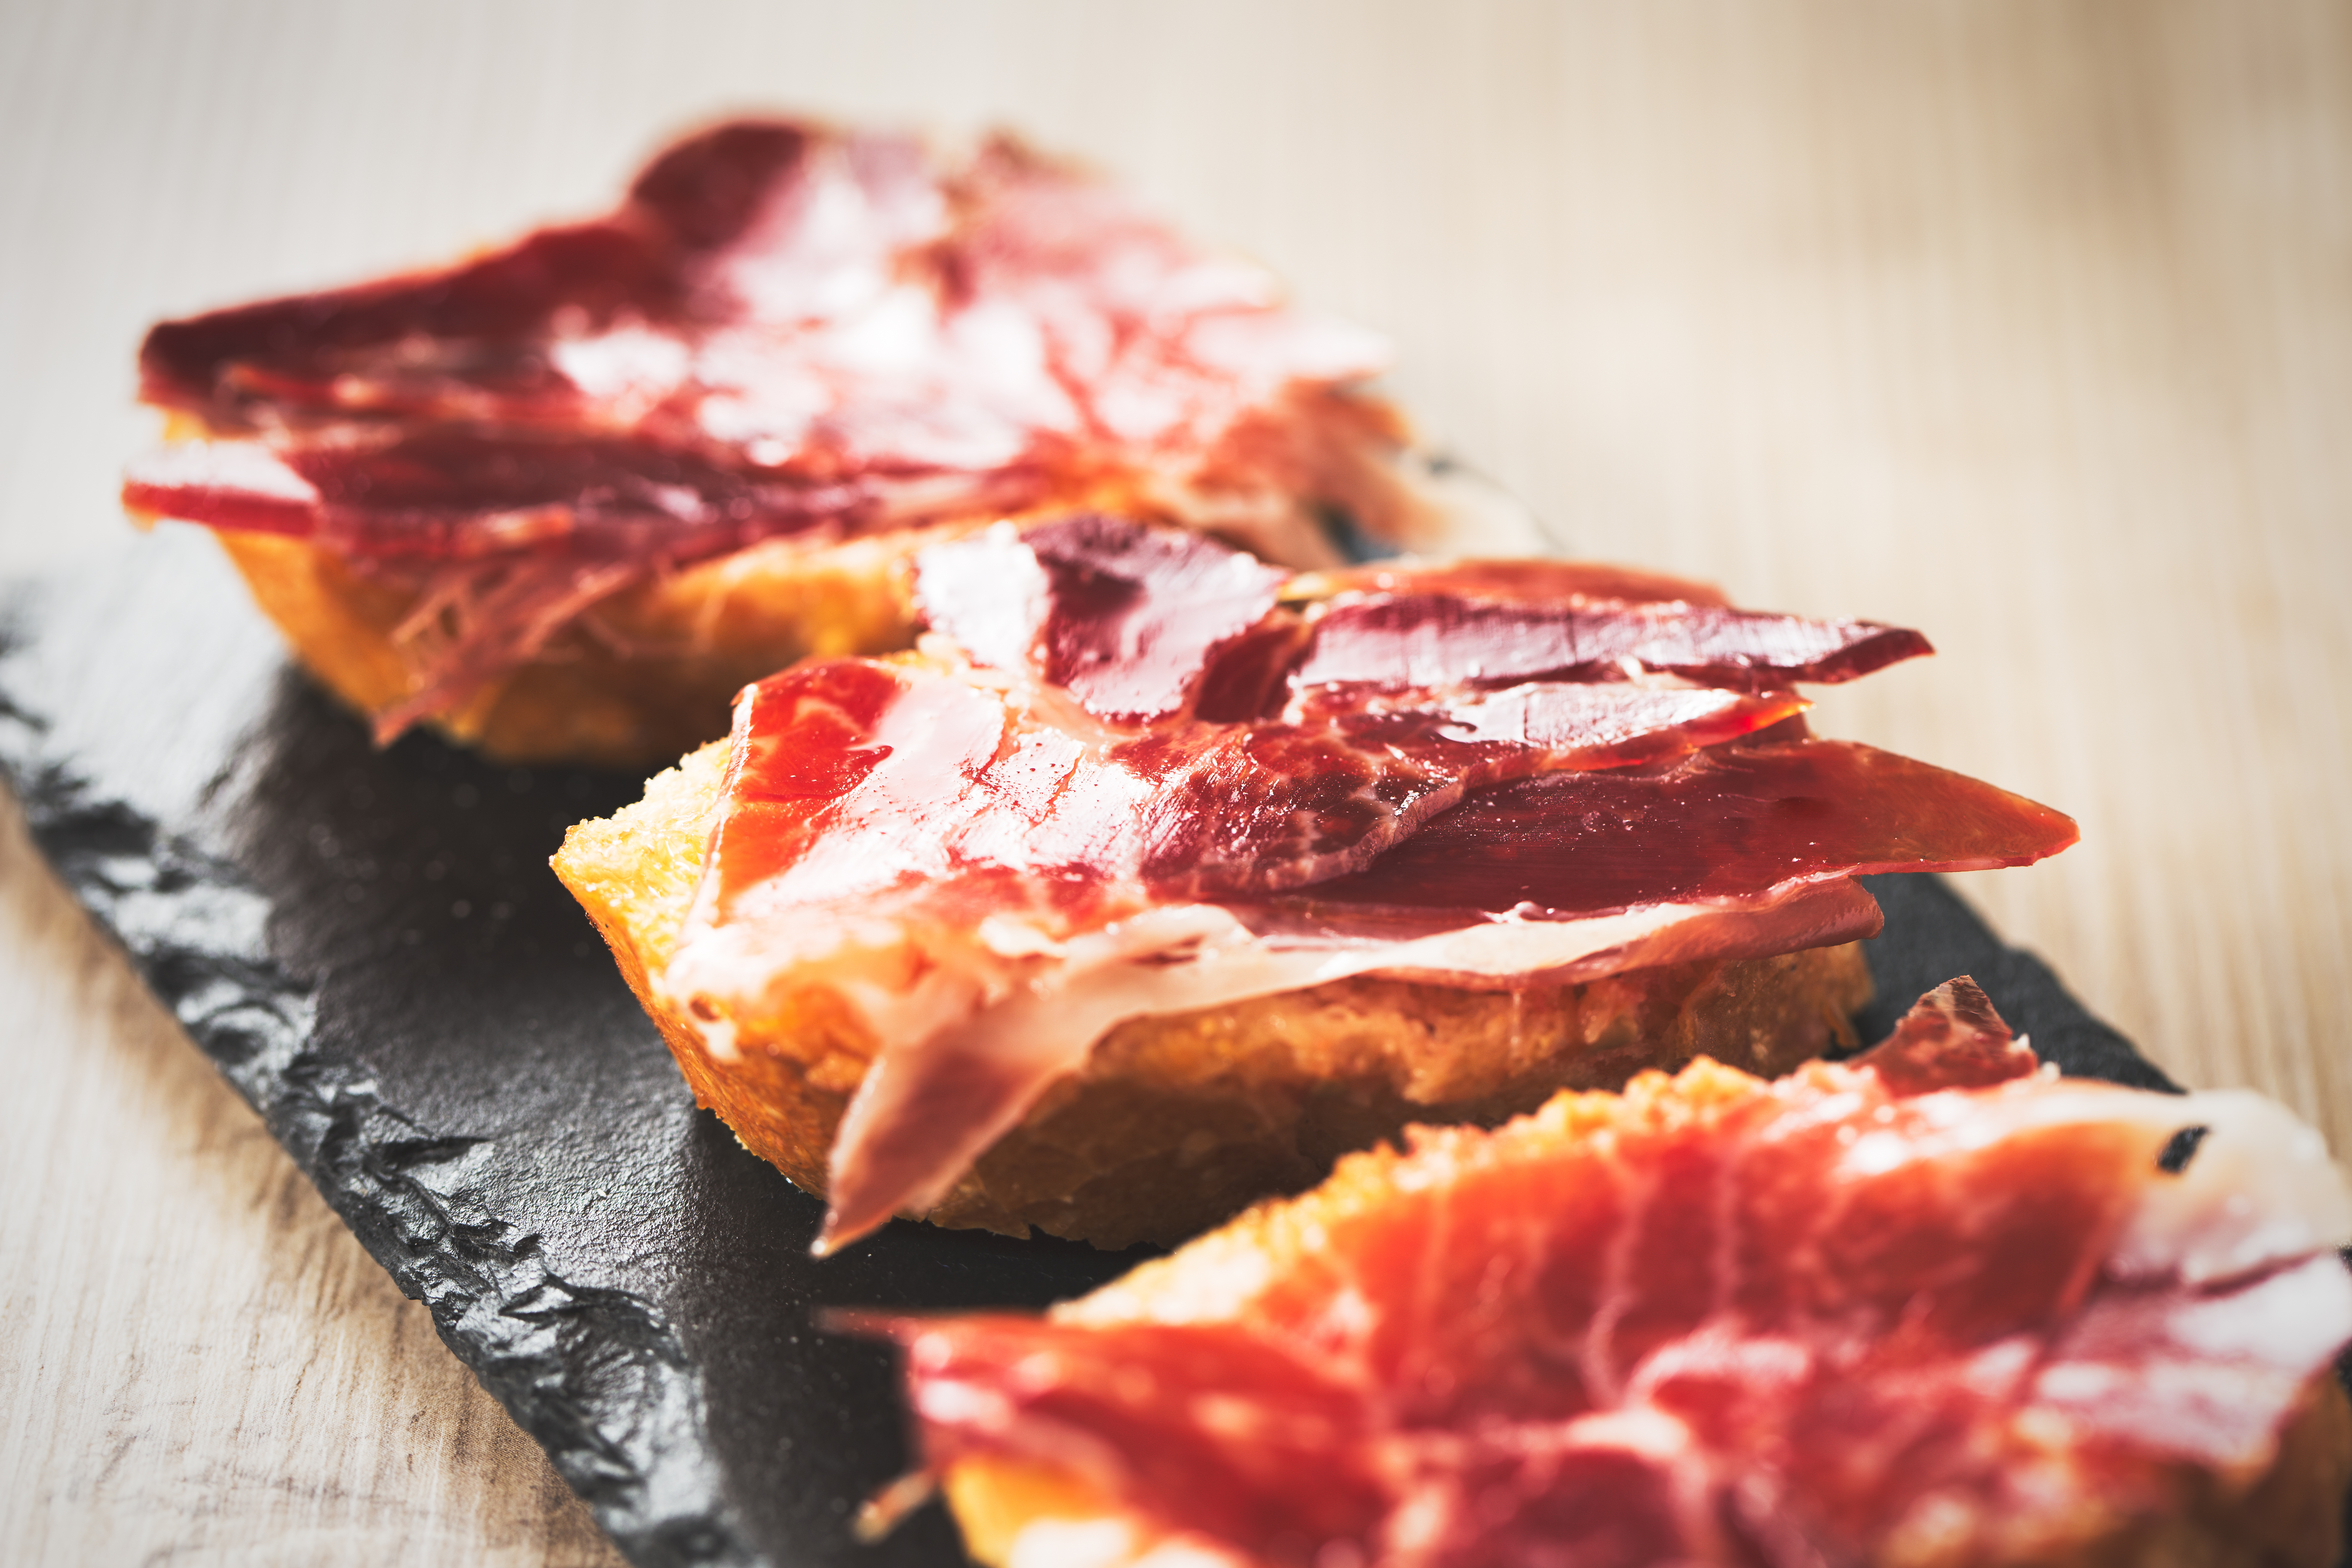 At Home With: Chef José Andrés's Go-To Catalonian Breakfast Recipe